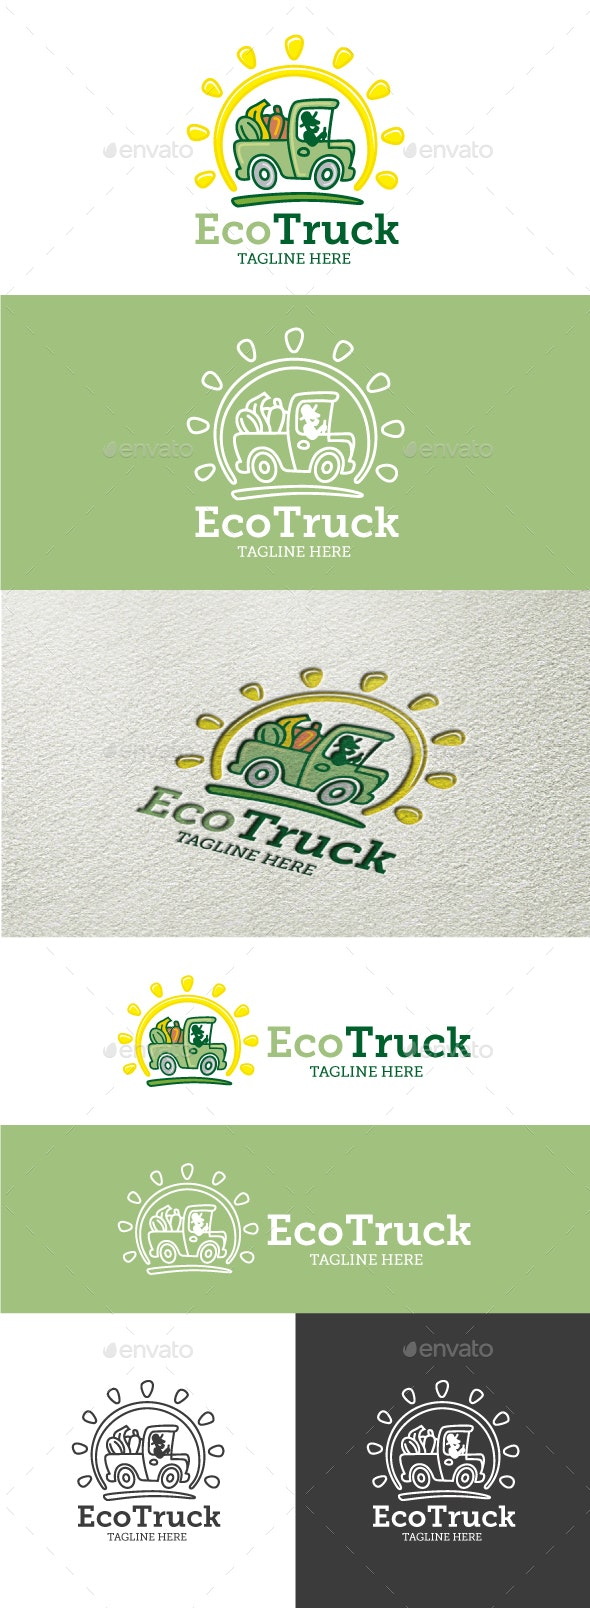 Eco Truck - Food Logo Templates